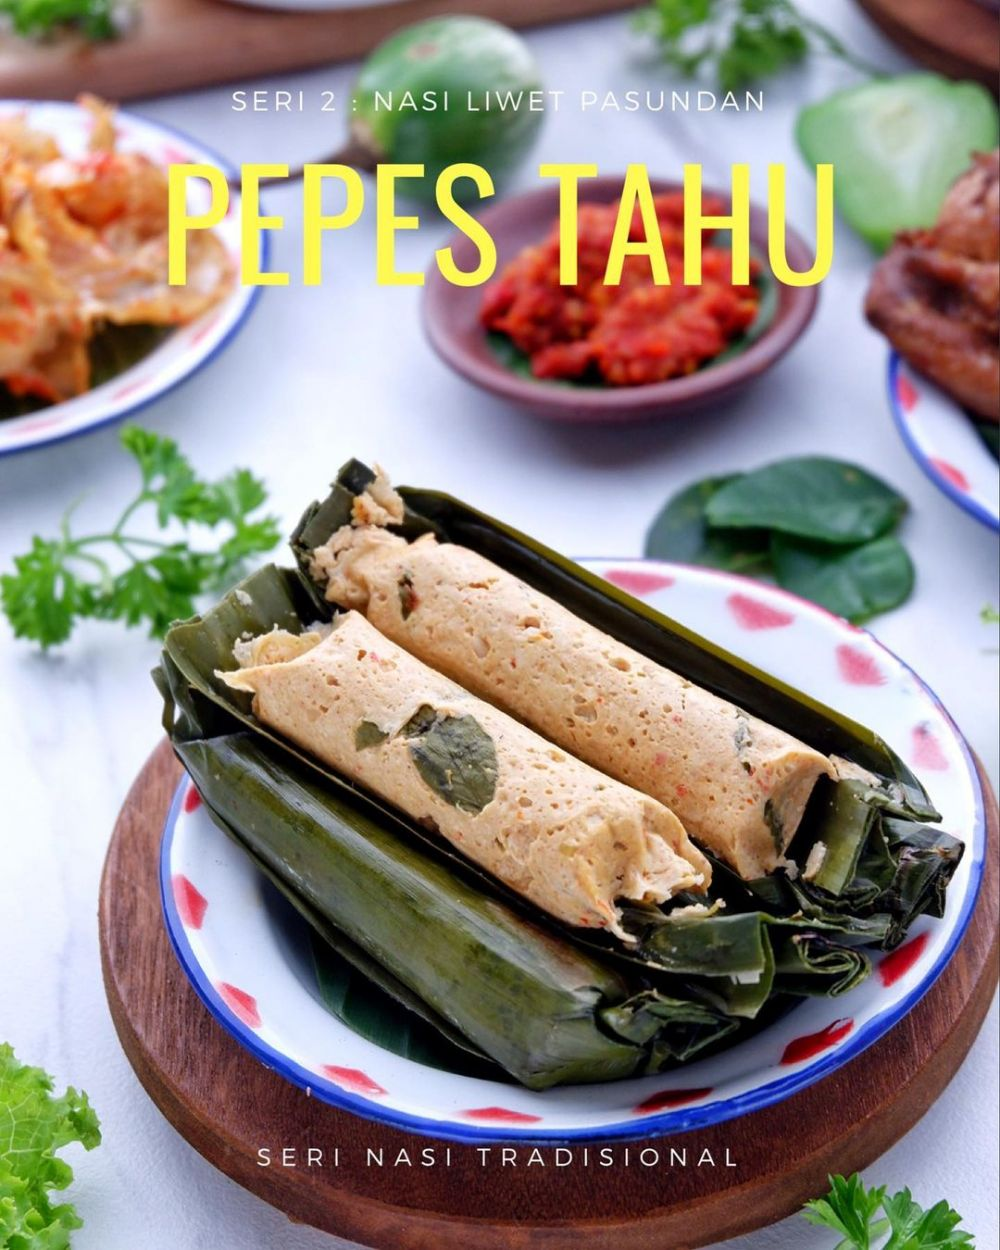 Resep pepes tahu © 2020 brilio.net